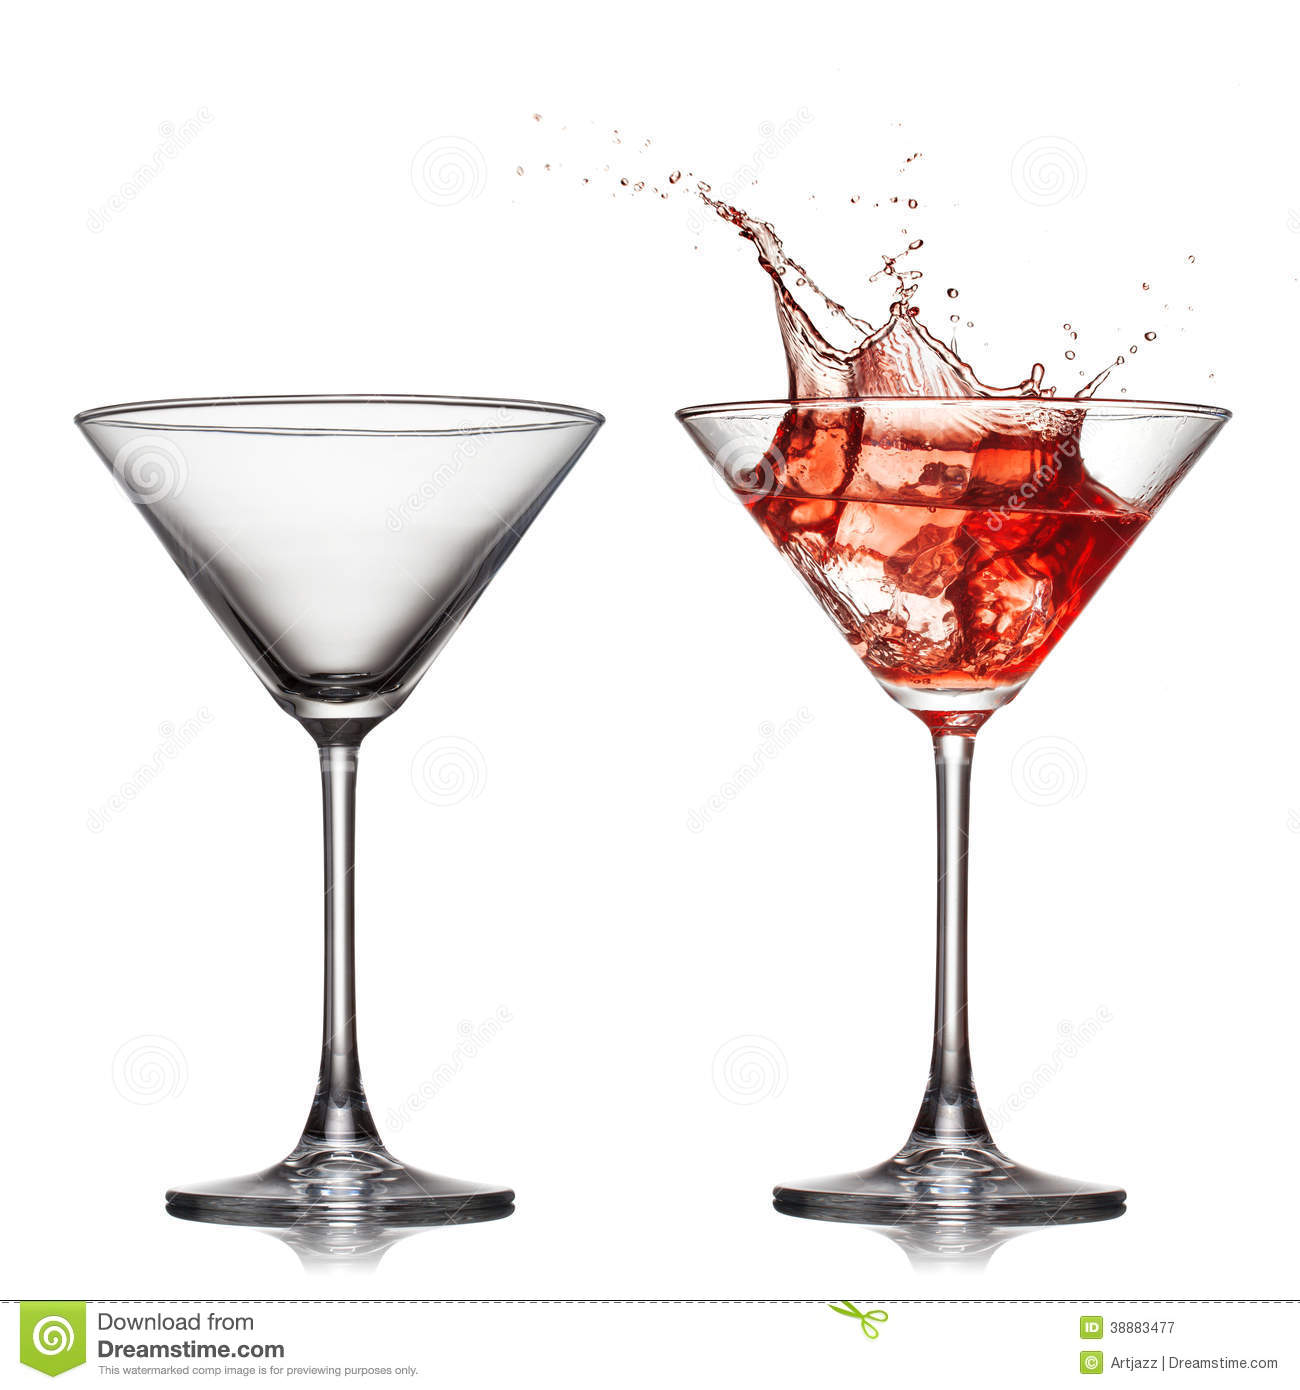 empty and full martini glass with red cocktail stock image. Black Bedroom Furniture Sets. Home Design Ideas